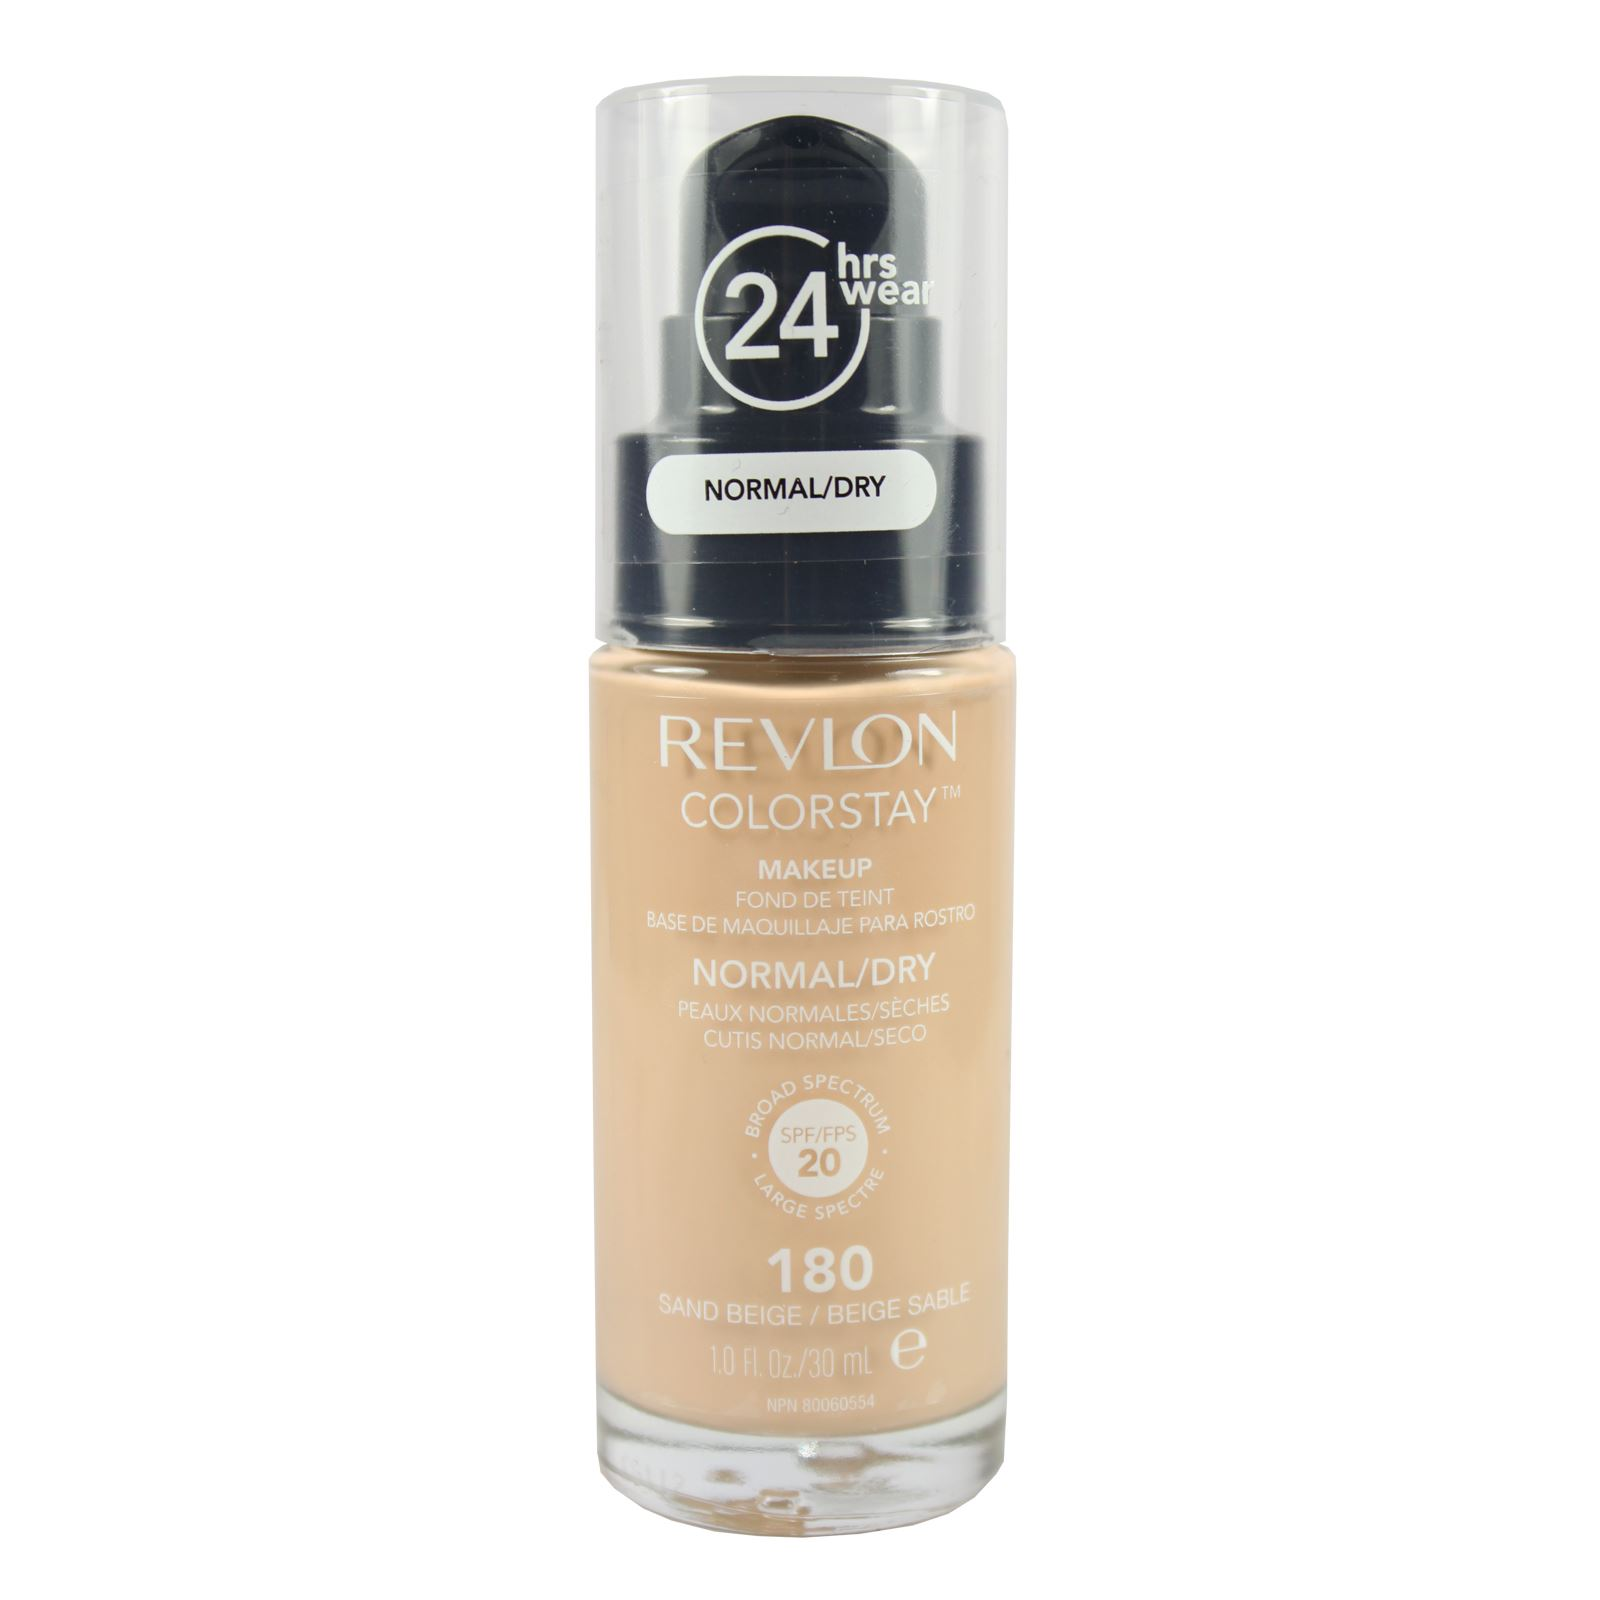 Full coverage foundation for over 40